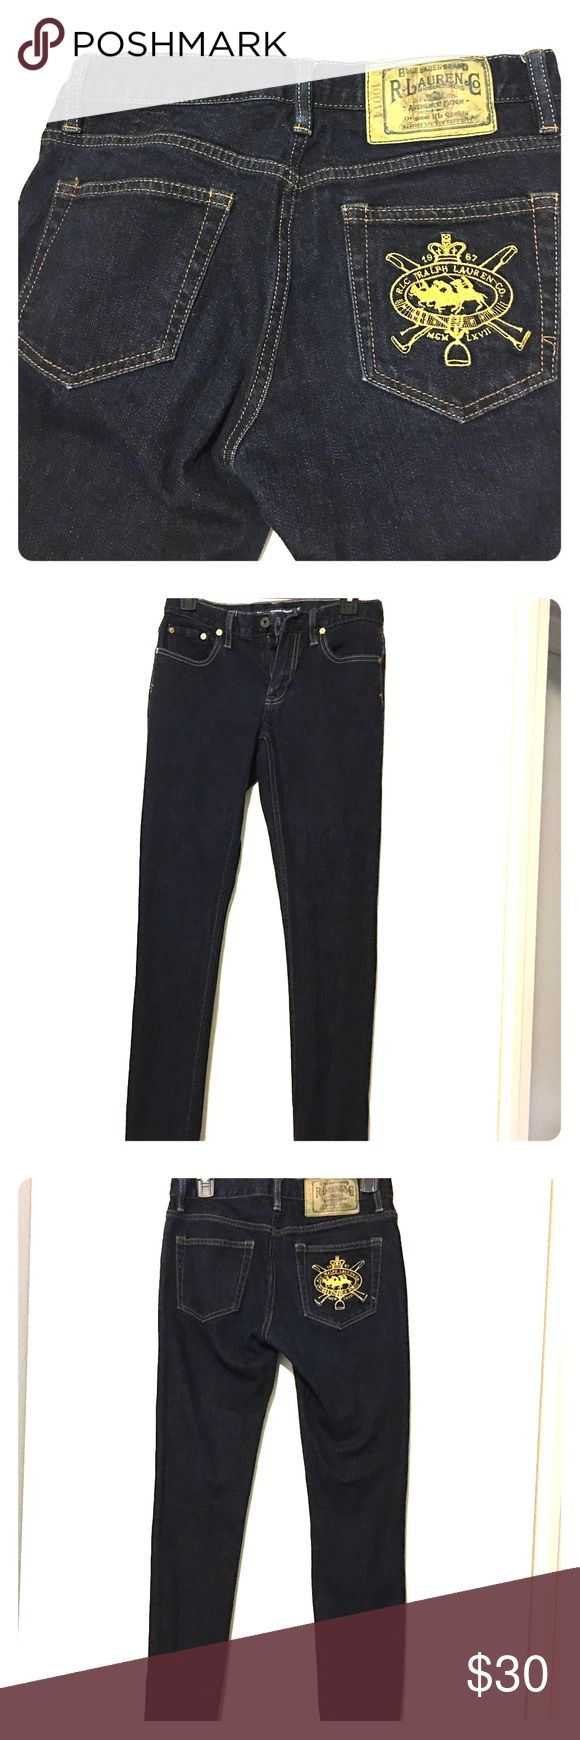 Brand New Women's Ralph Lauren Polo Jeans Brand new WOMENS Ralph Lauren Polo Jeans. I bought them at the Polo Outlet and have worn them once. They are a darker denim and sit right above the hips. Very slimming jeans and gorgeous Ralph Lauren logo on the pocket. Denim & Supply Ralph Lauren Jeans Straight Leg